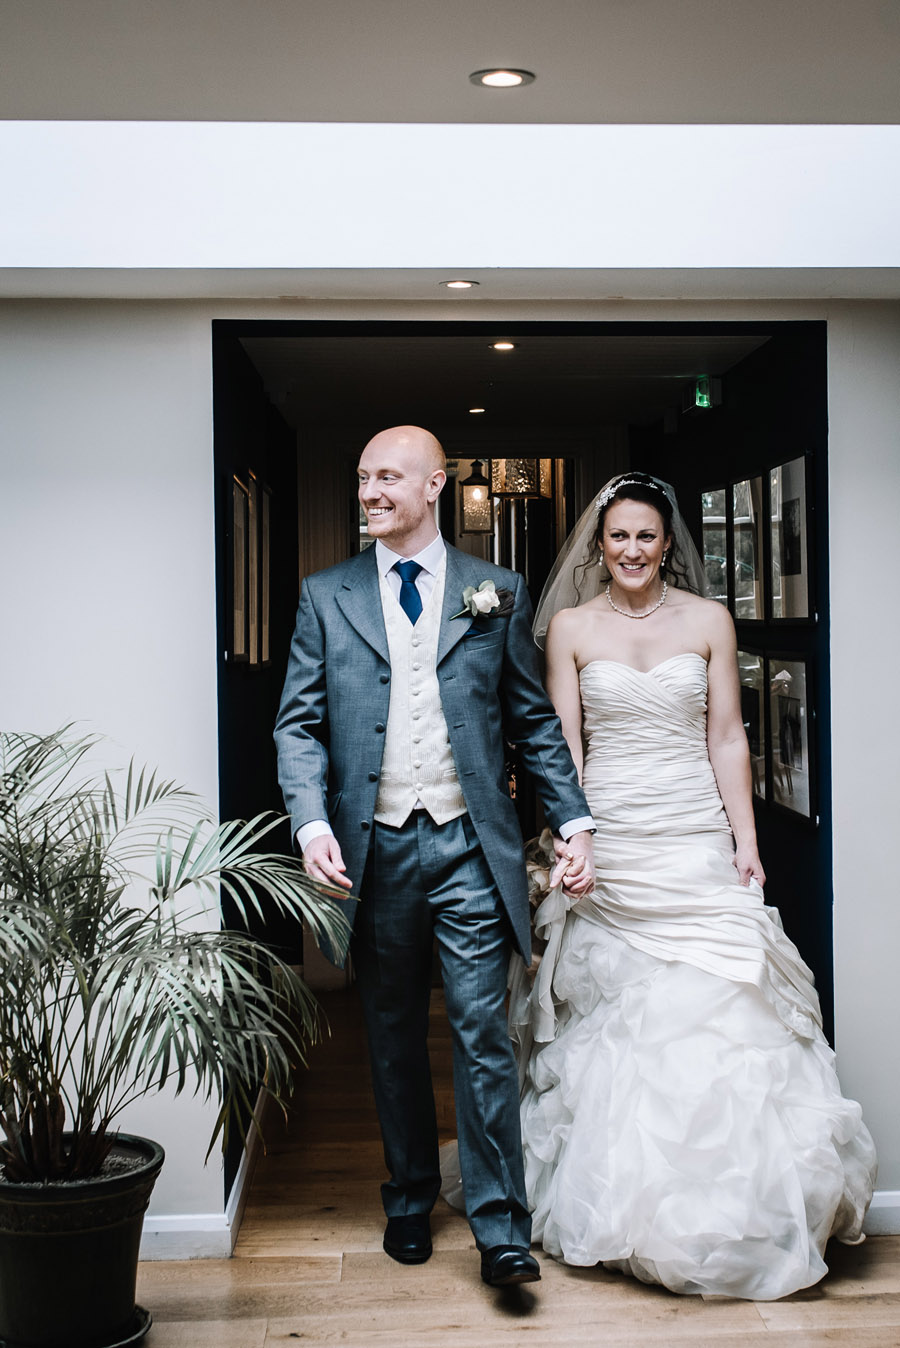 Peacock wedding styling ideas at Larmer Tree Gardens, image credit Oobaloos Photography (29)